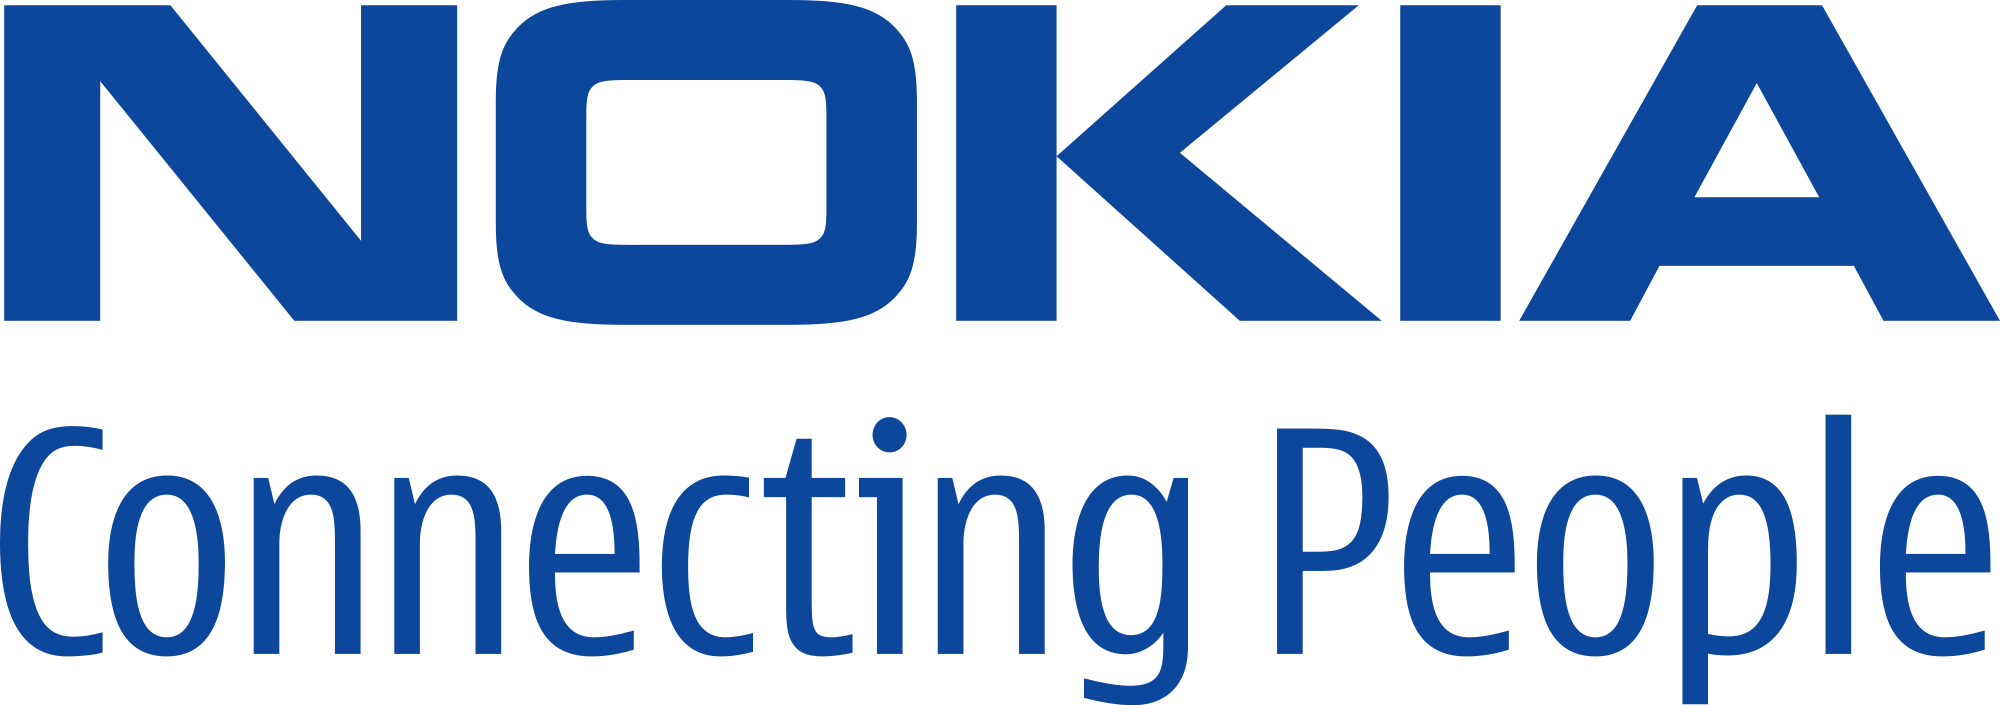 nokia connecting people slogan logo png #1482